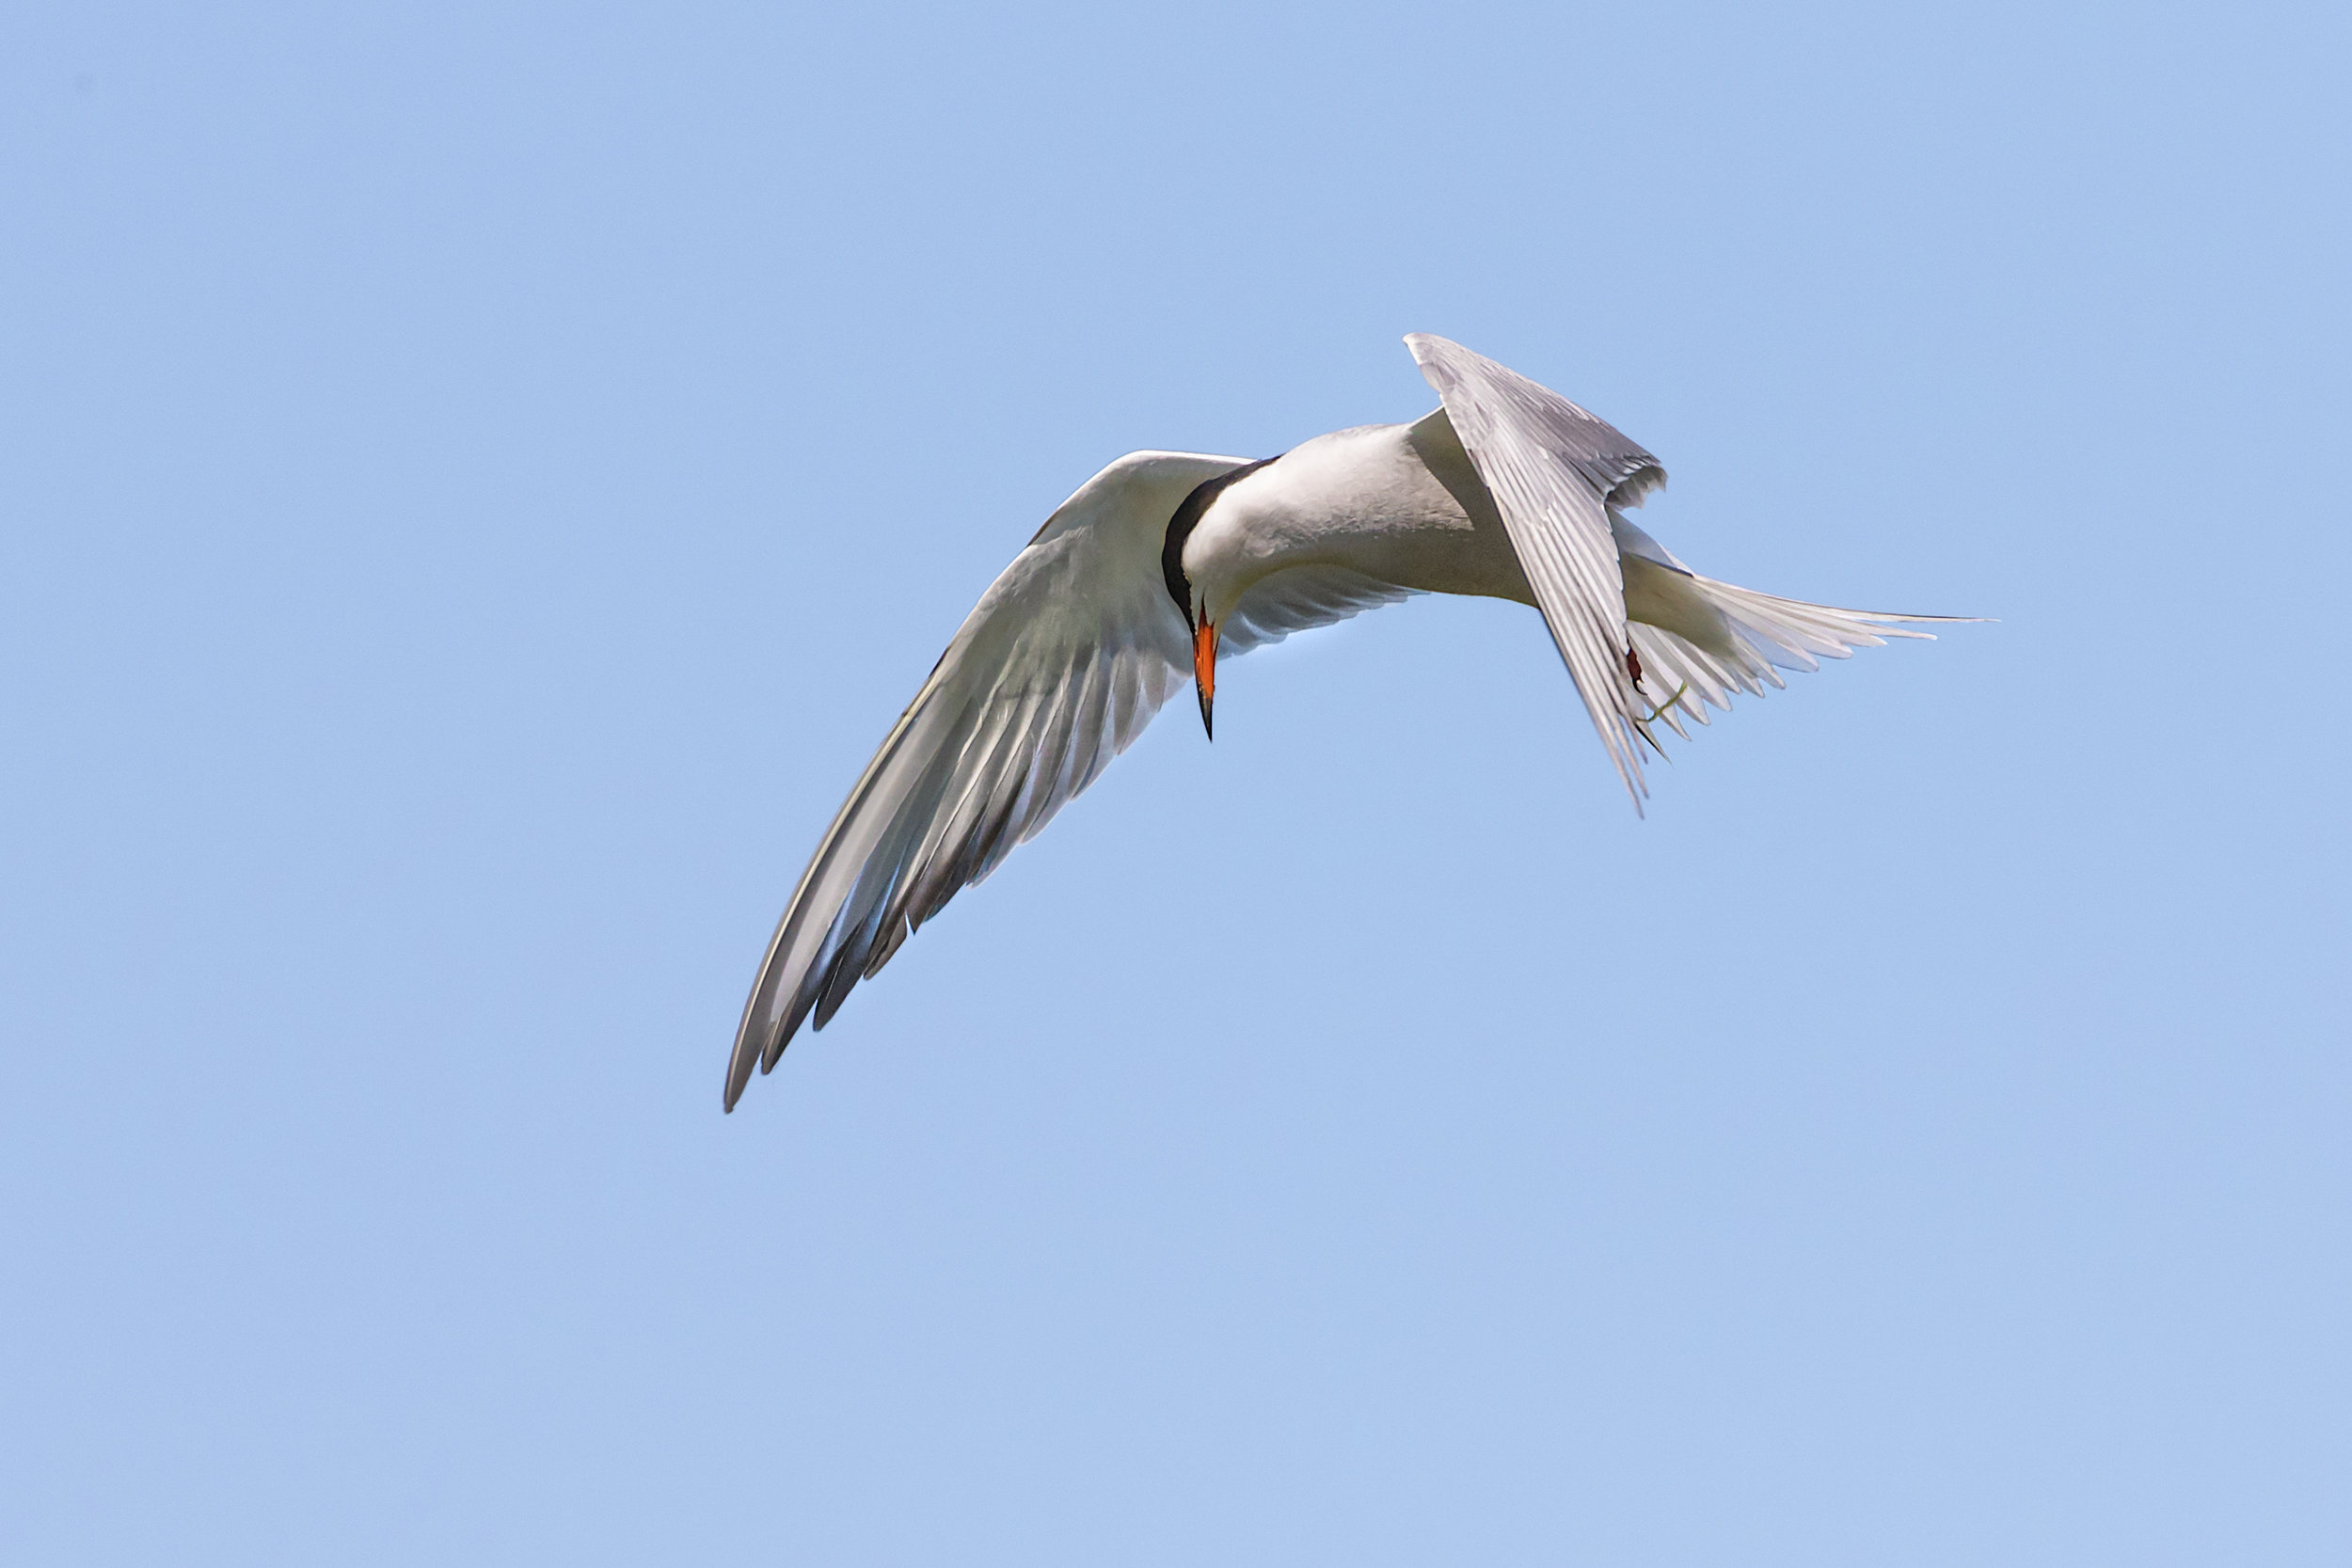 Common Tern looking out for fish below